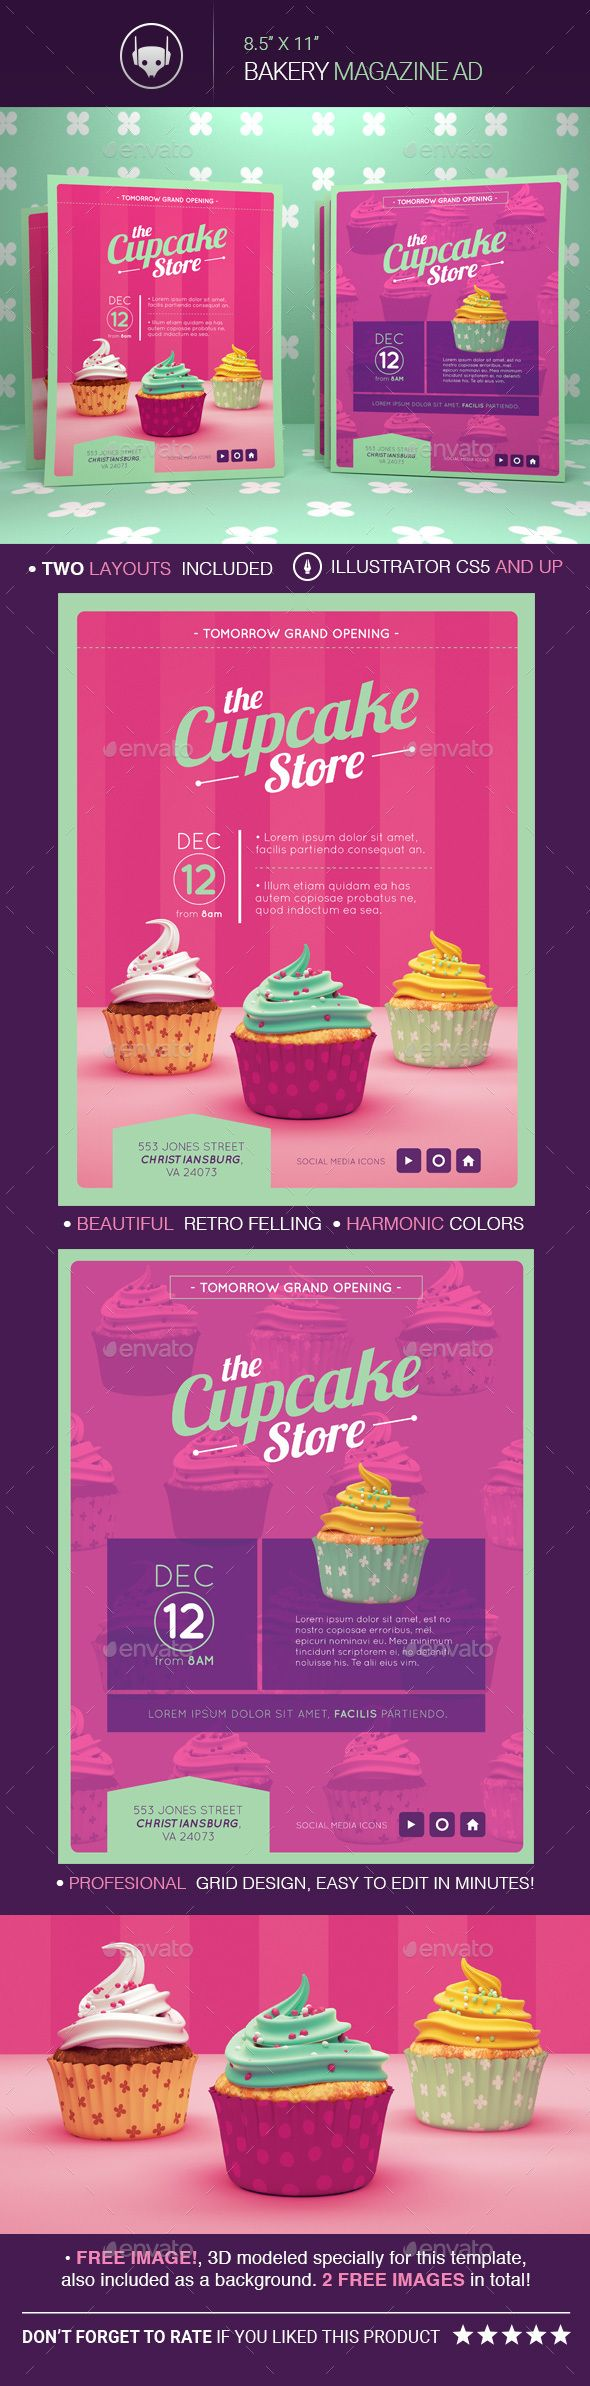 Vintage Bakery Magazine Advertising Templates - Restaurant Flyers